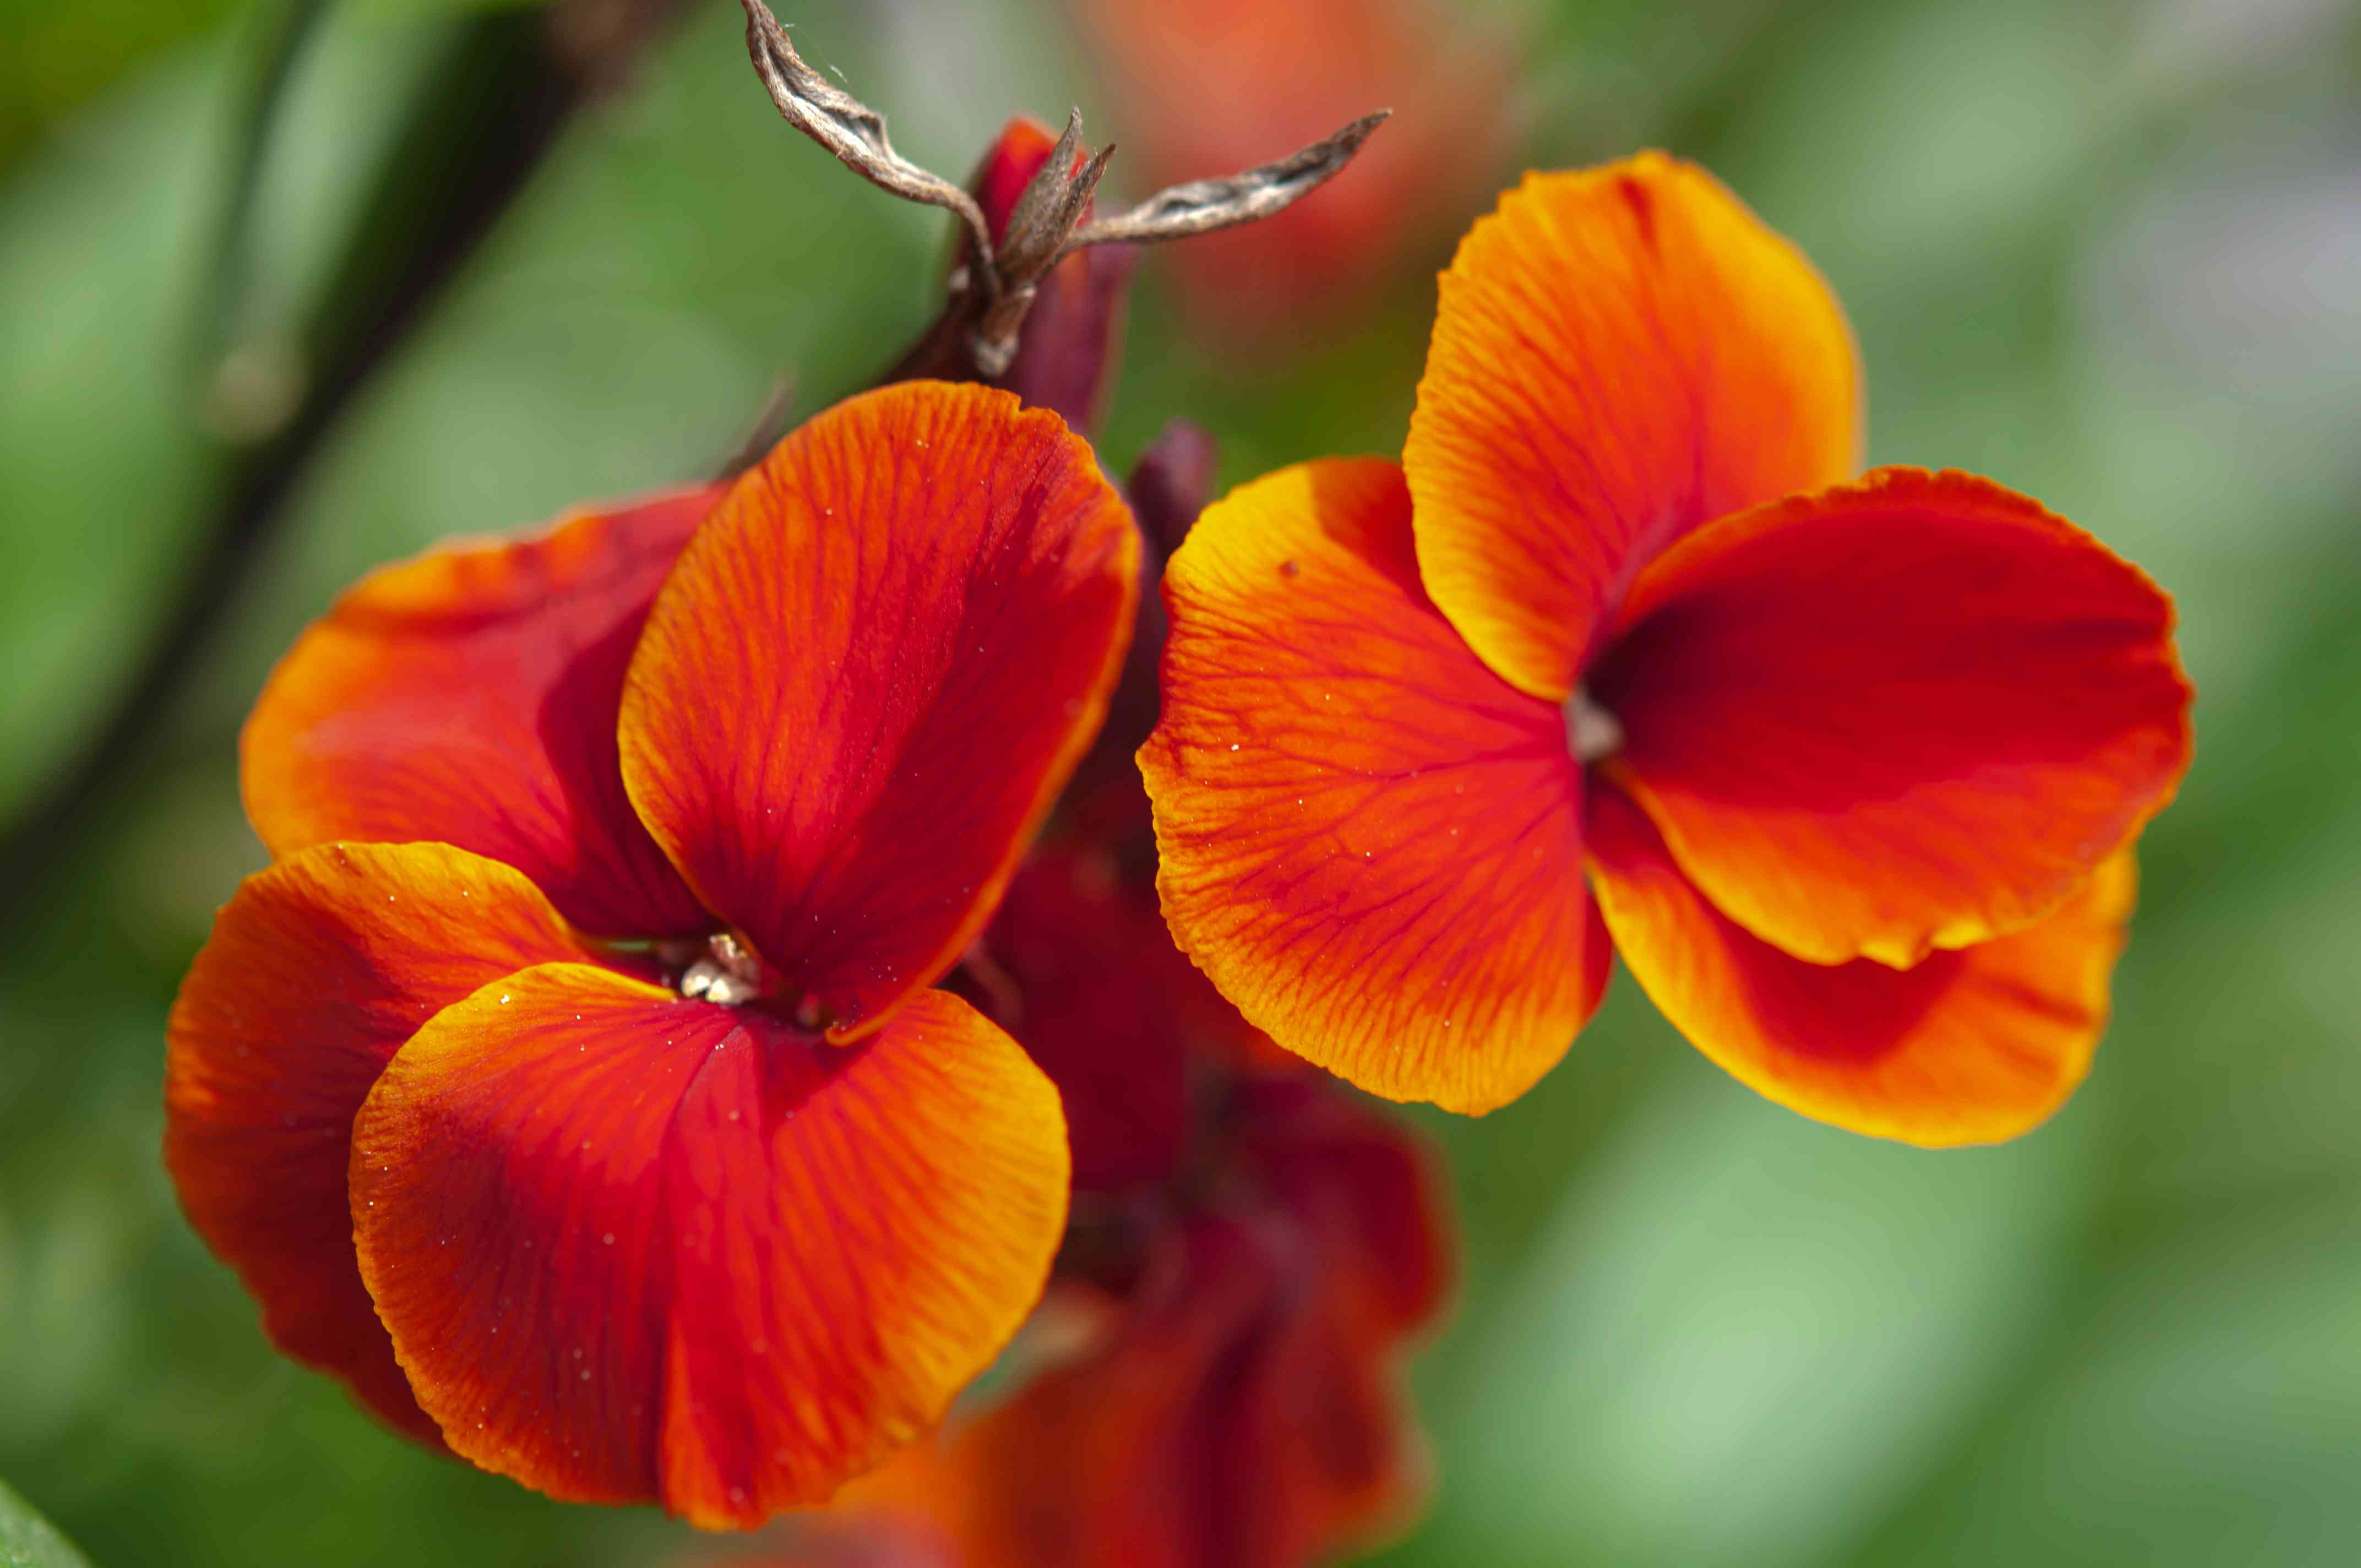 Fire king wallflower plant with red-orange flowers closeup